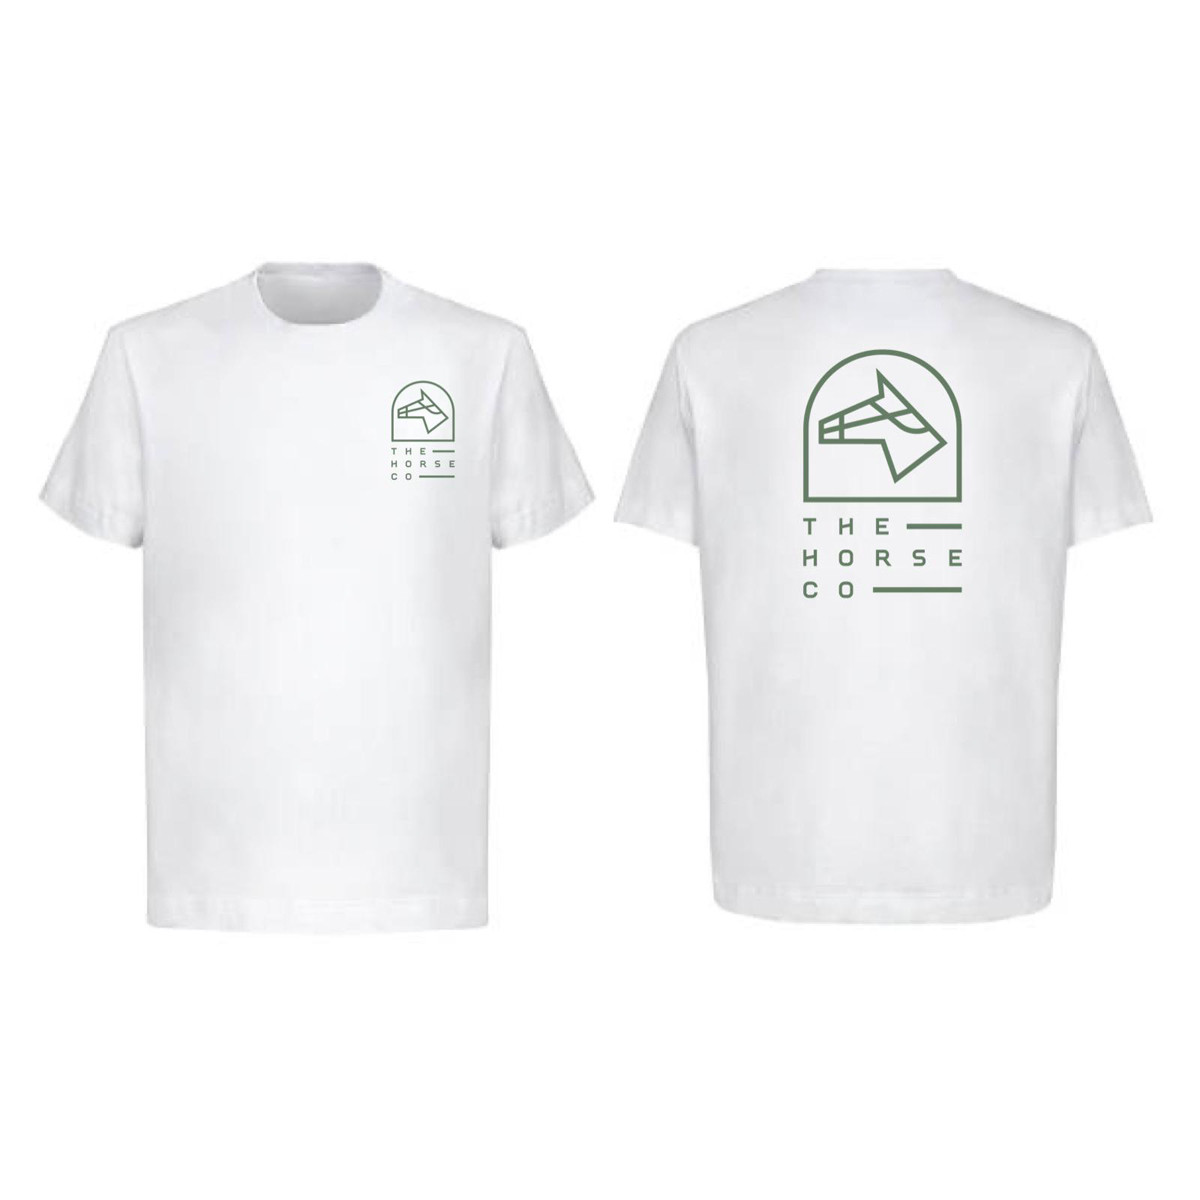 The Horse Co T-Shirt